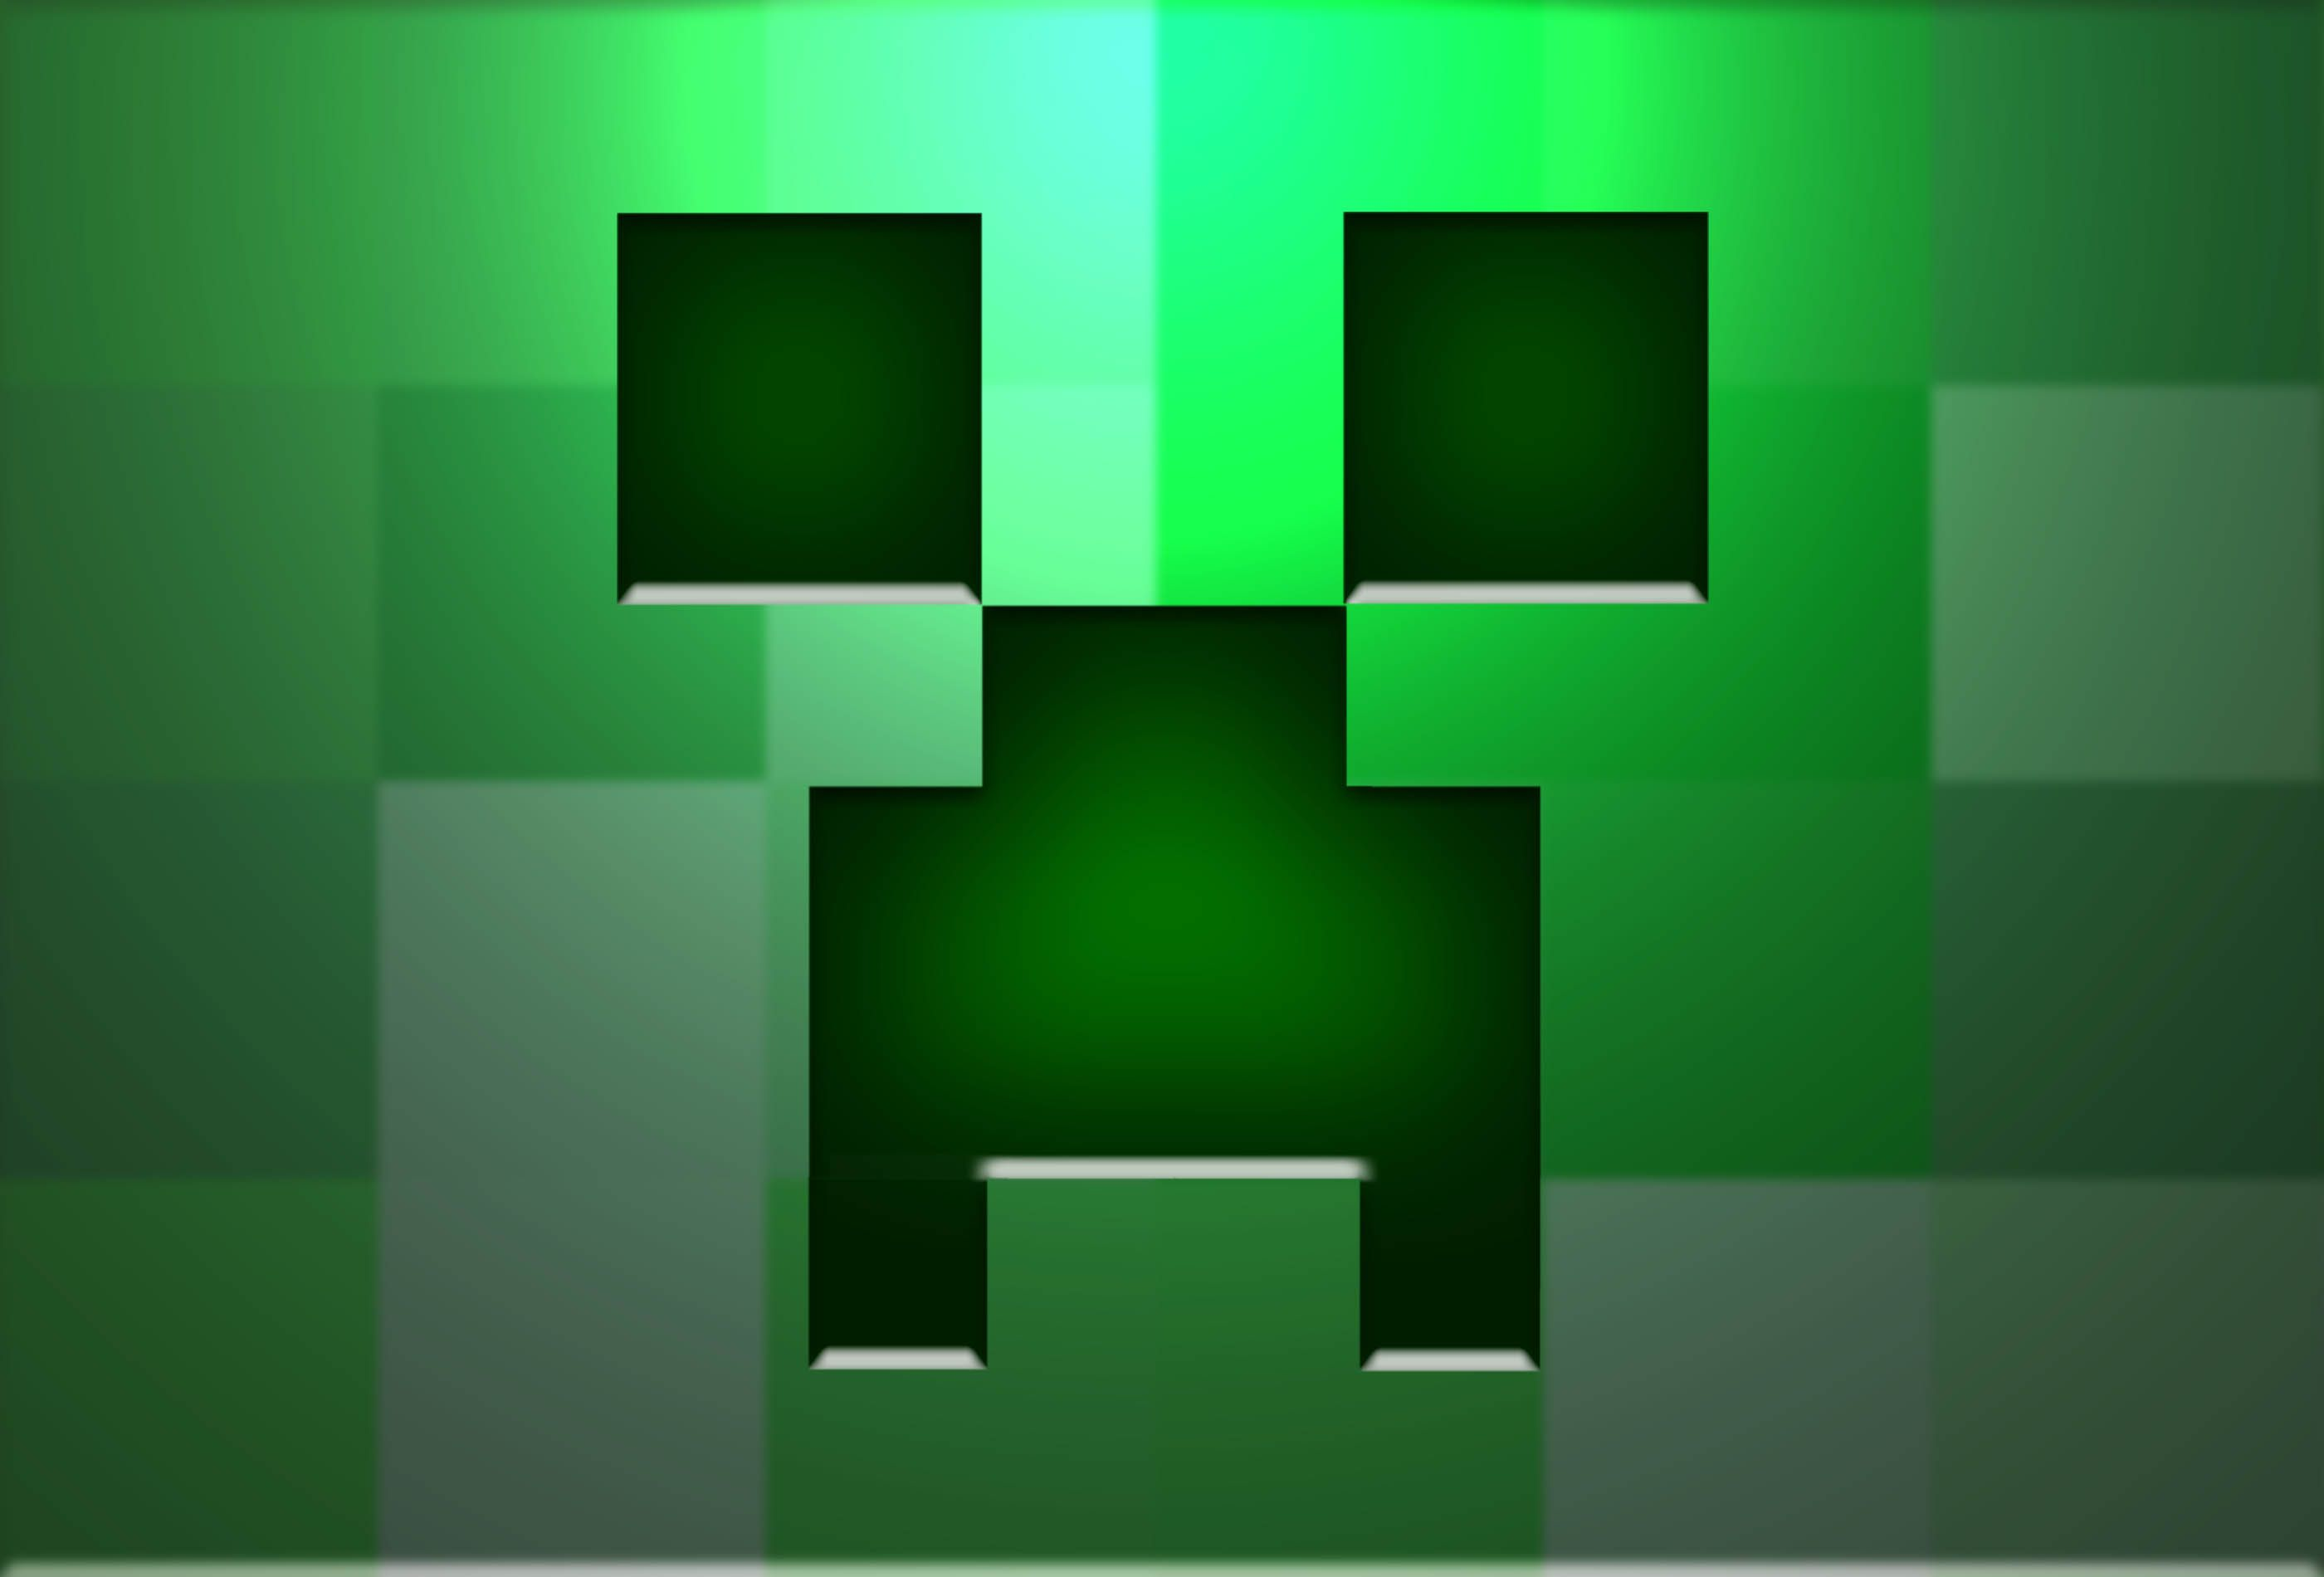 Pin By Destiny Part 2 Minionsqaud On Minecraft Face In 2021 Minecraft Wallpaper Creepers Minecraft